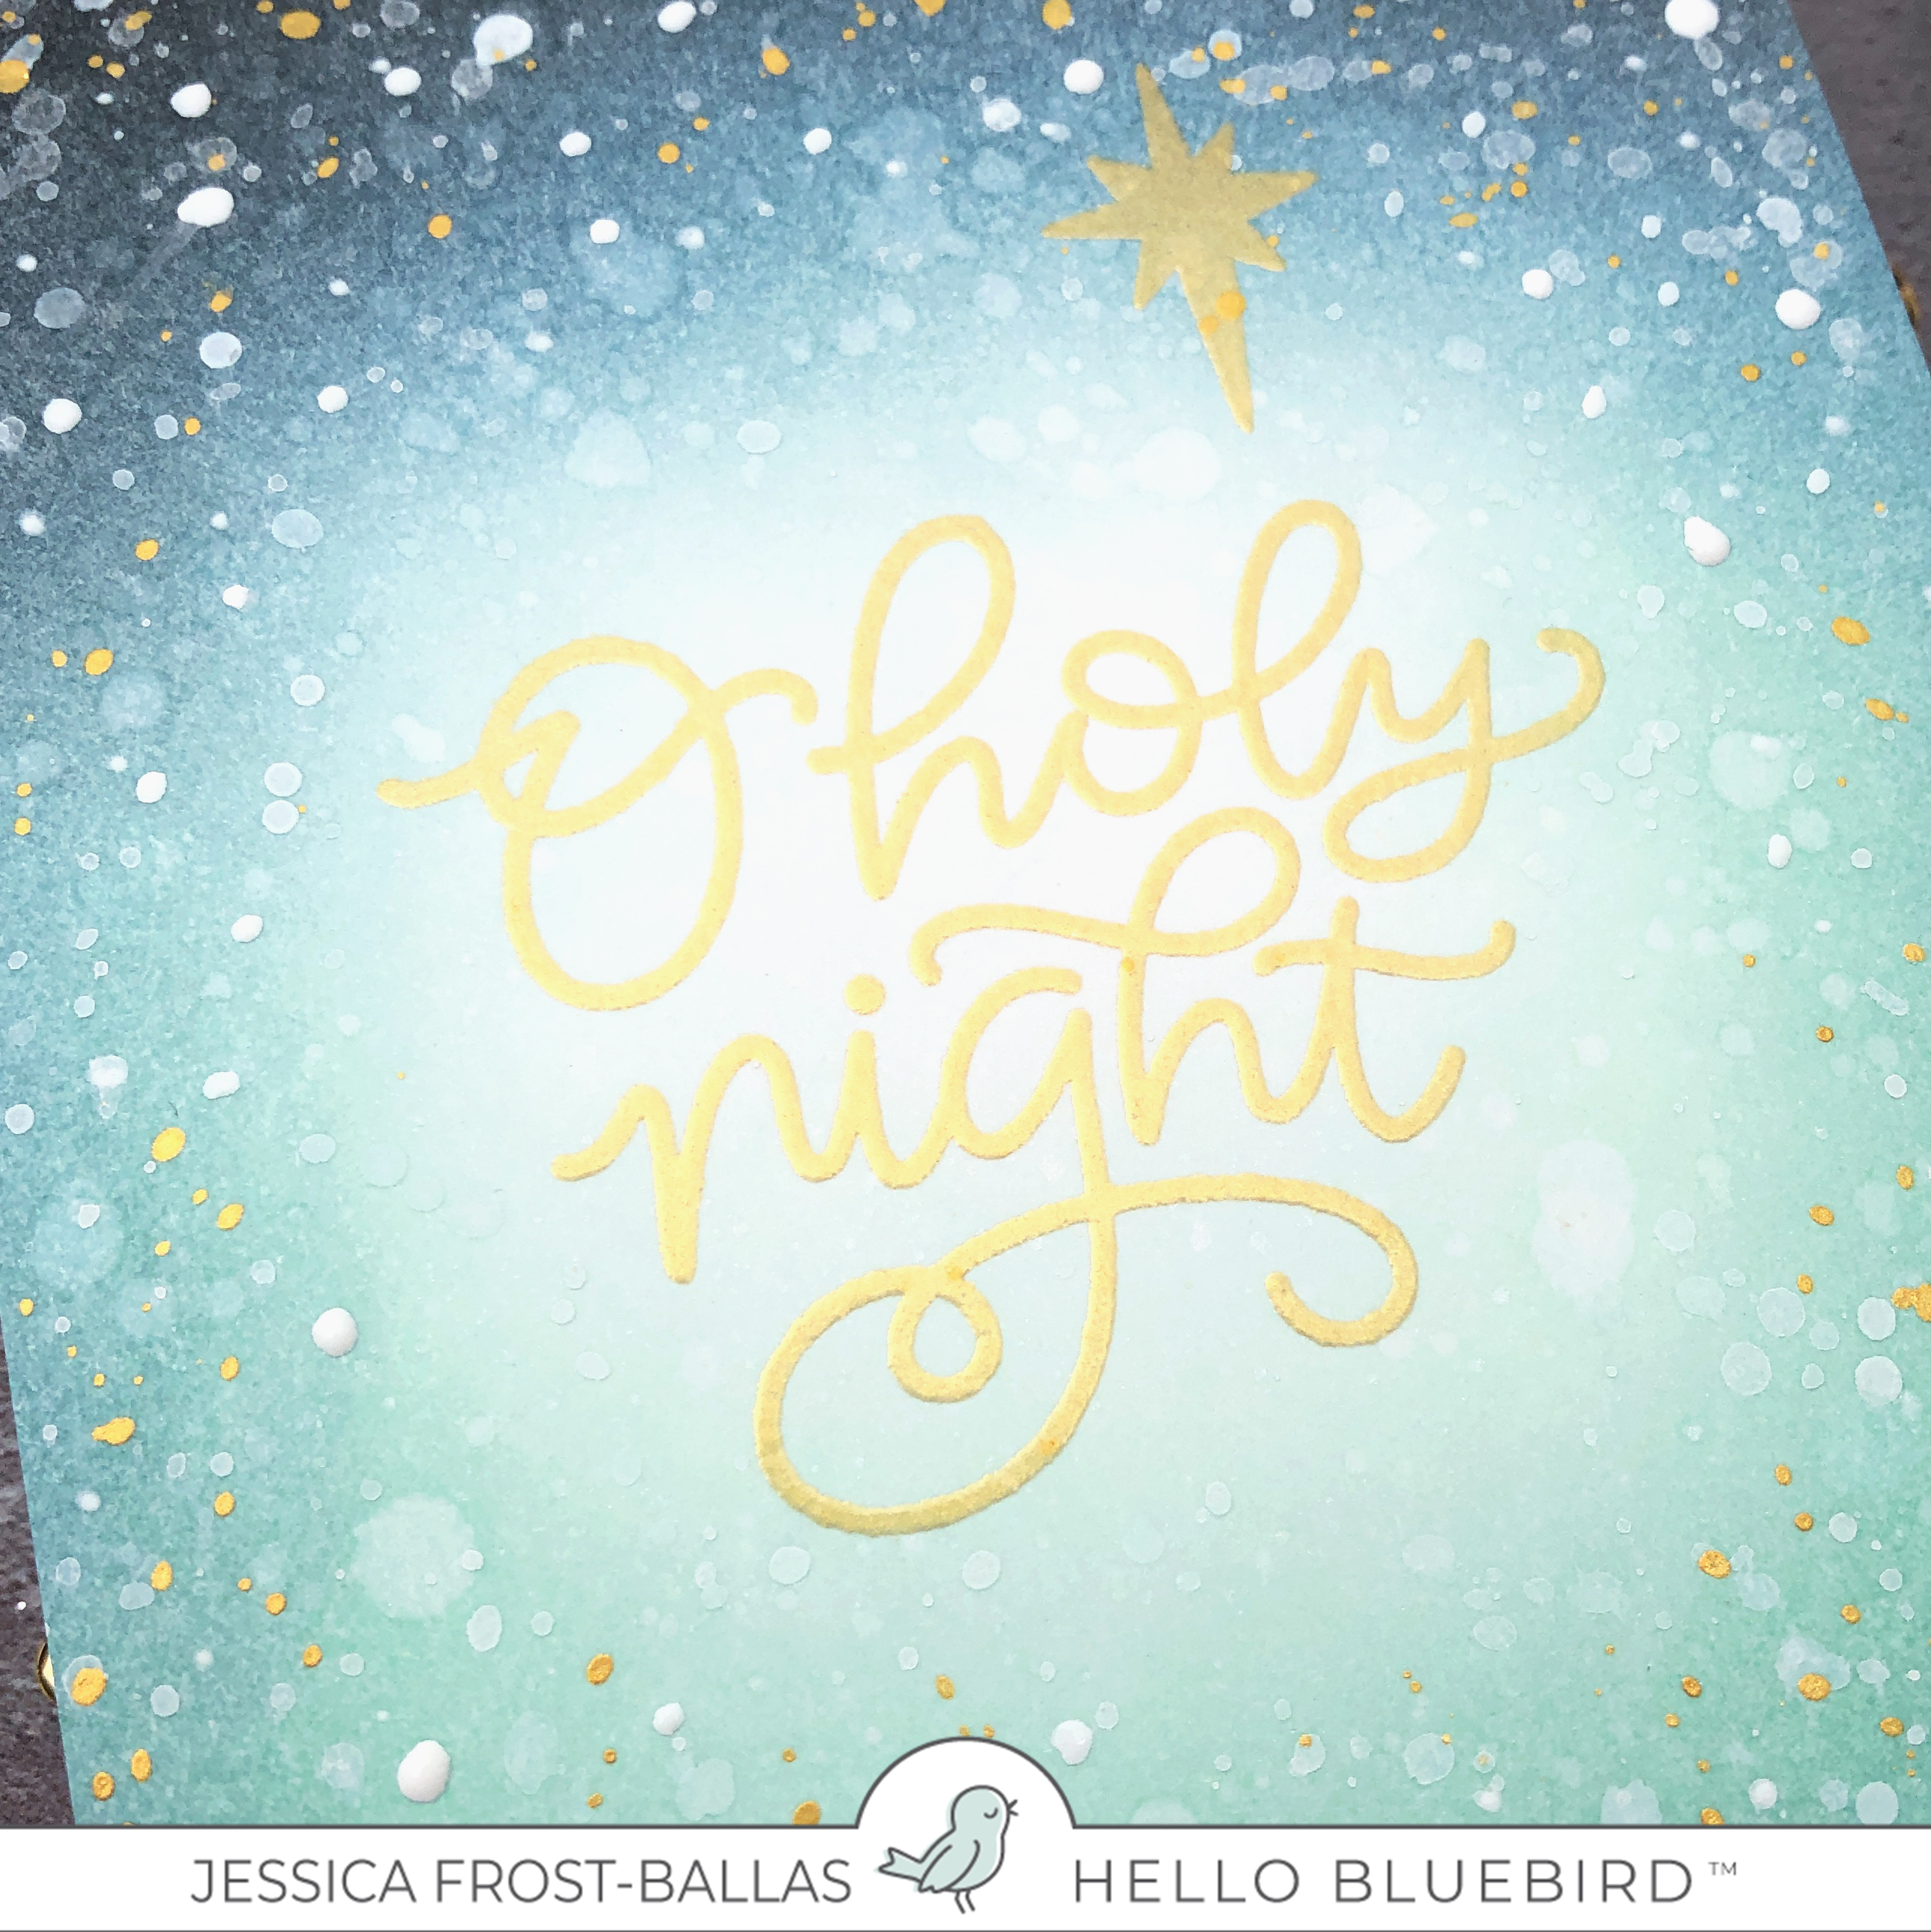 O Holy Night by Jessica Frost-Ballas for Hello Bluebird